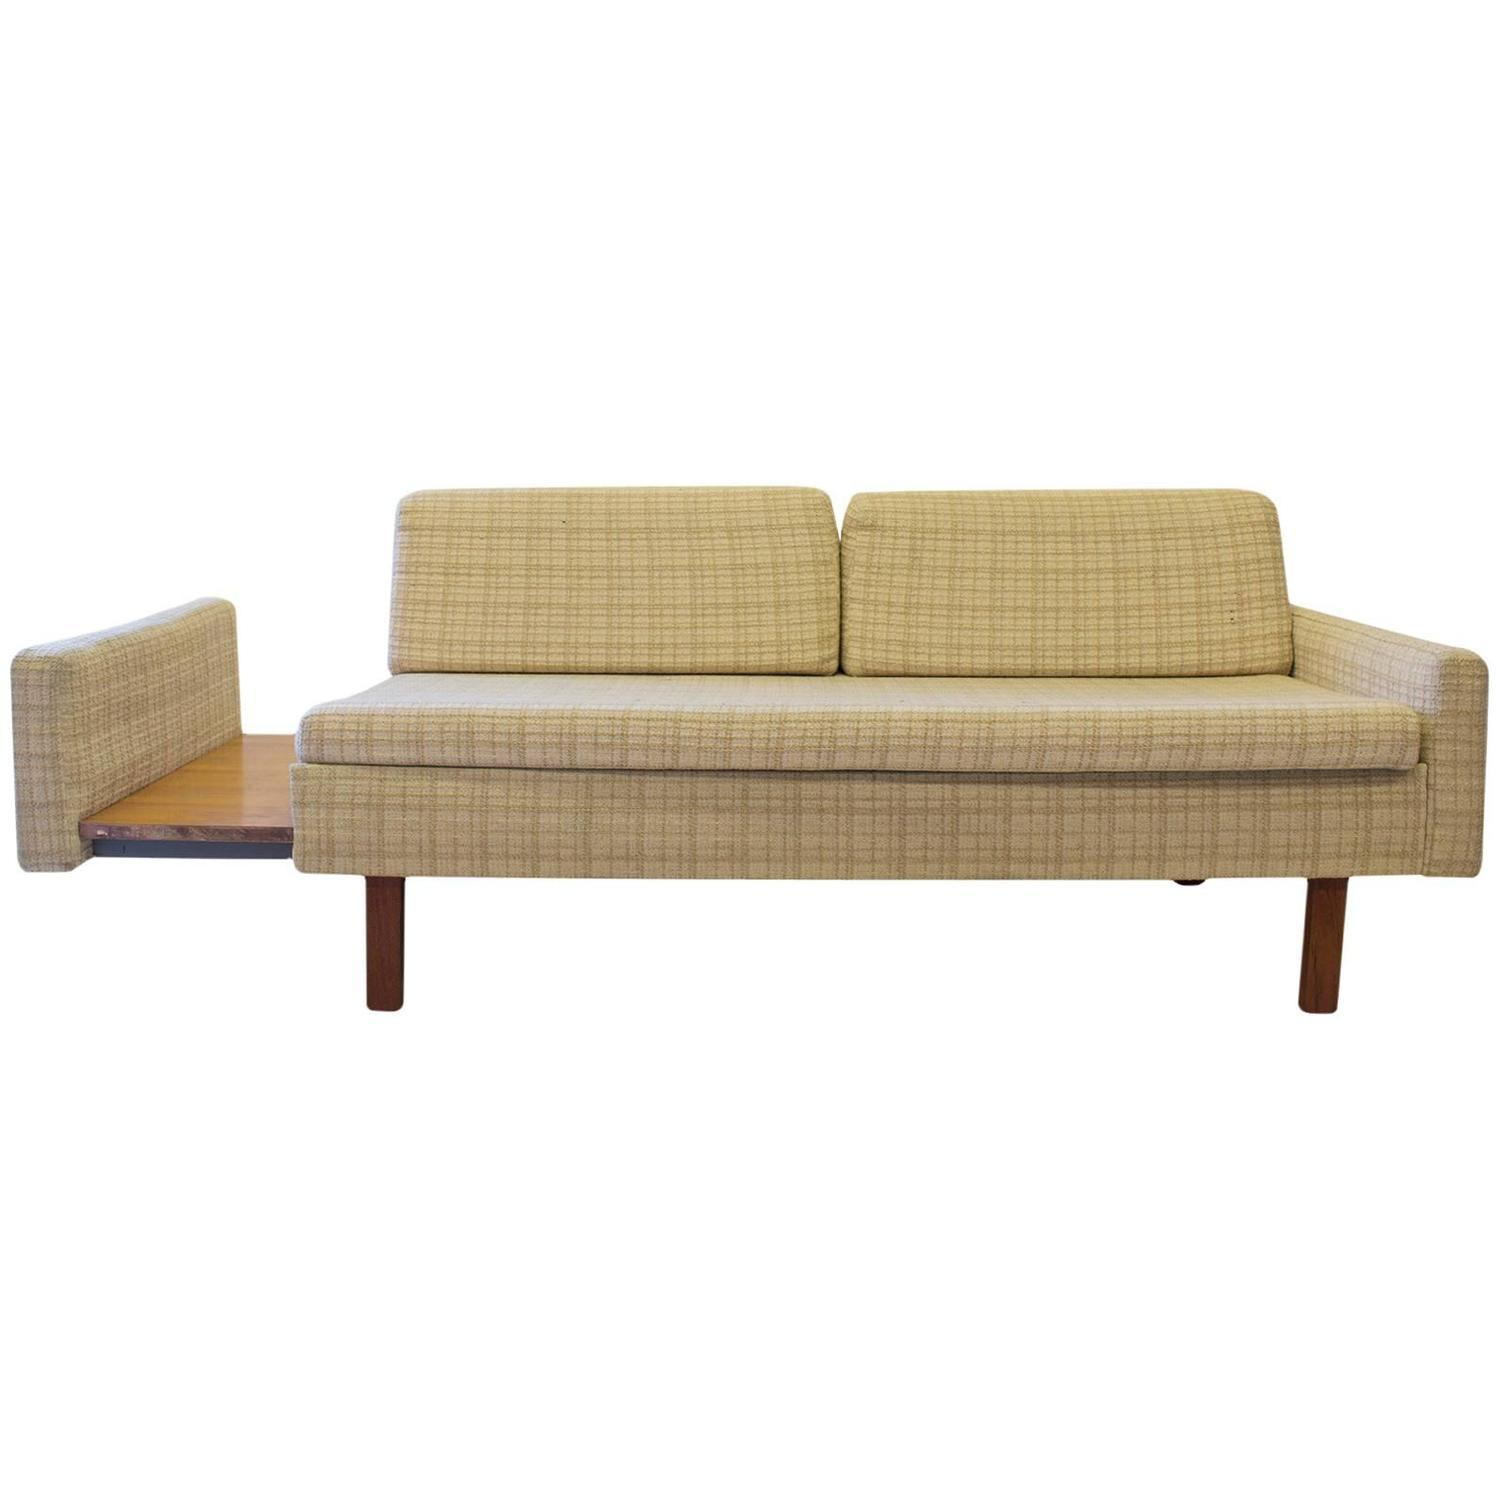 Table Retractable Console Mid Century Loveseat With Retractable Side Table Chairish